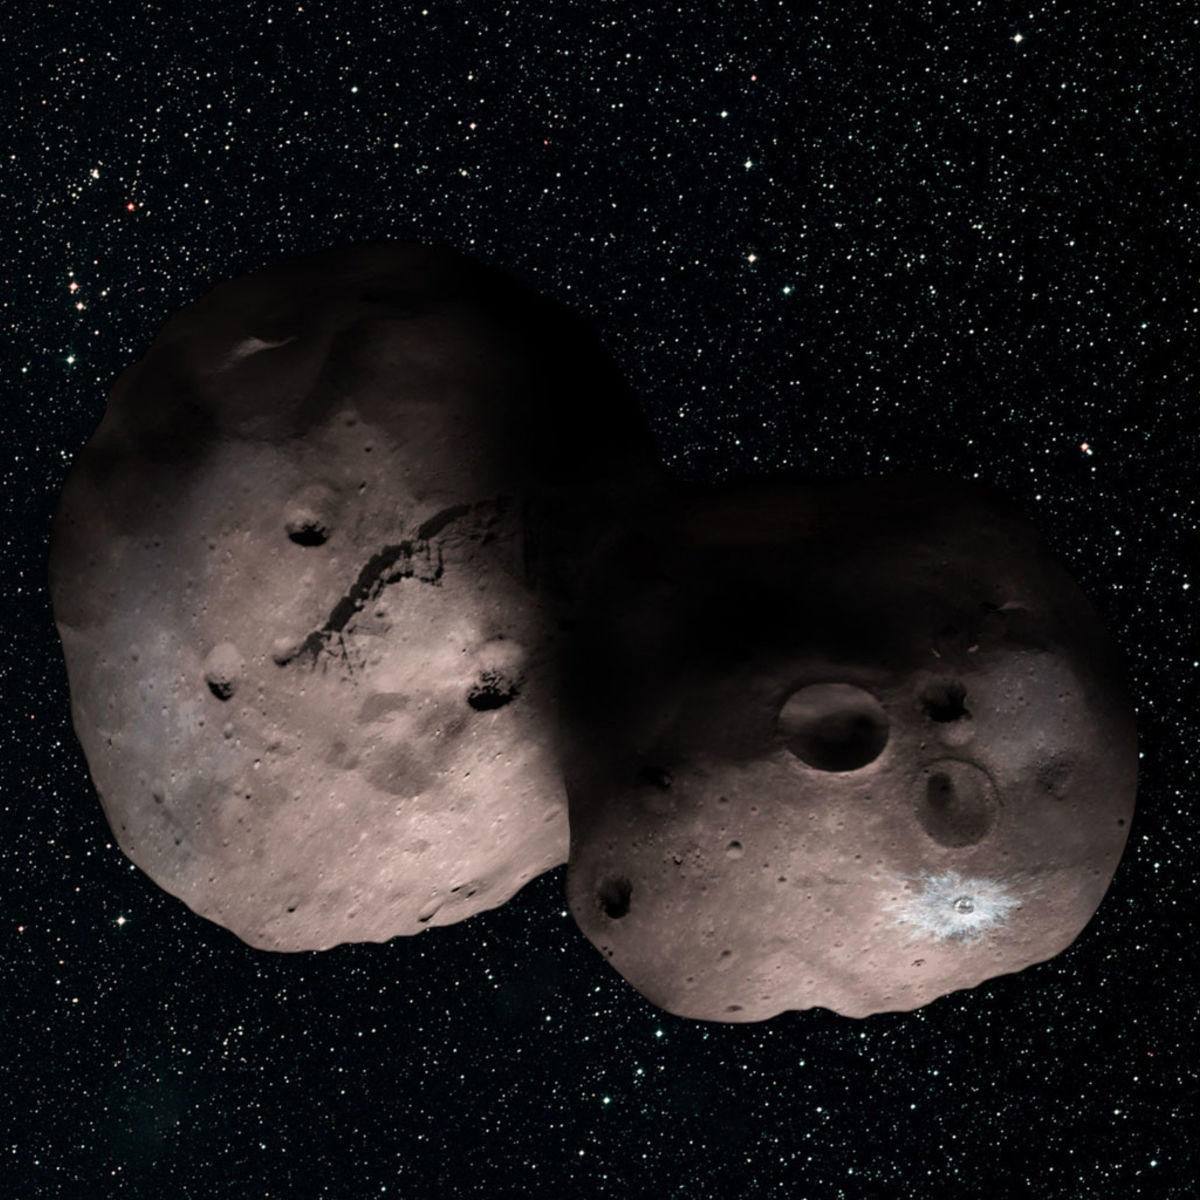 NASA New Horizons spacecraft spots Ultima Thule target for the first time